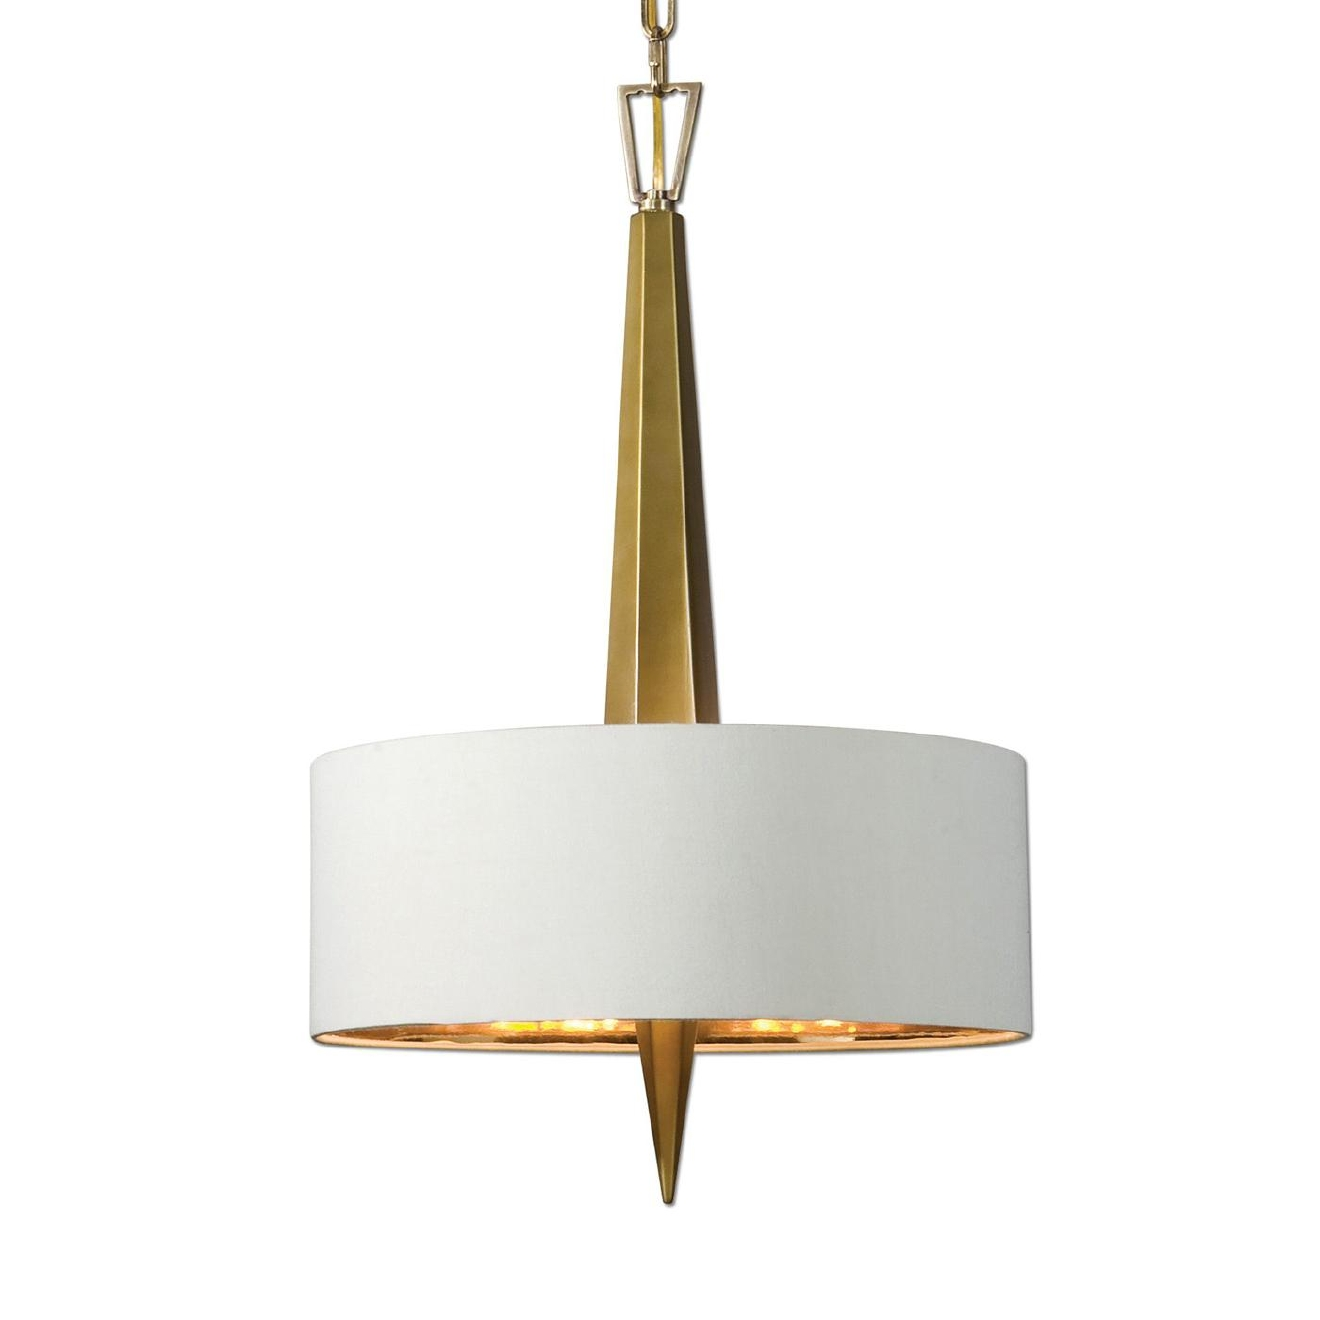 Uttermost 21264 Obeliska 3 Light Gold Chandelier ($217.80) An elegant chandelier with a sleek vertical ceramic center in warm gold finish evokes an art deco feeling with beige linen hardback shade featuring a gold interior.  (Image: ATGStores.com)